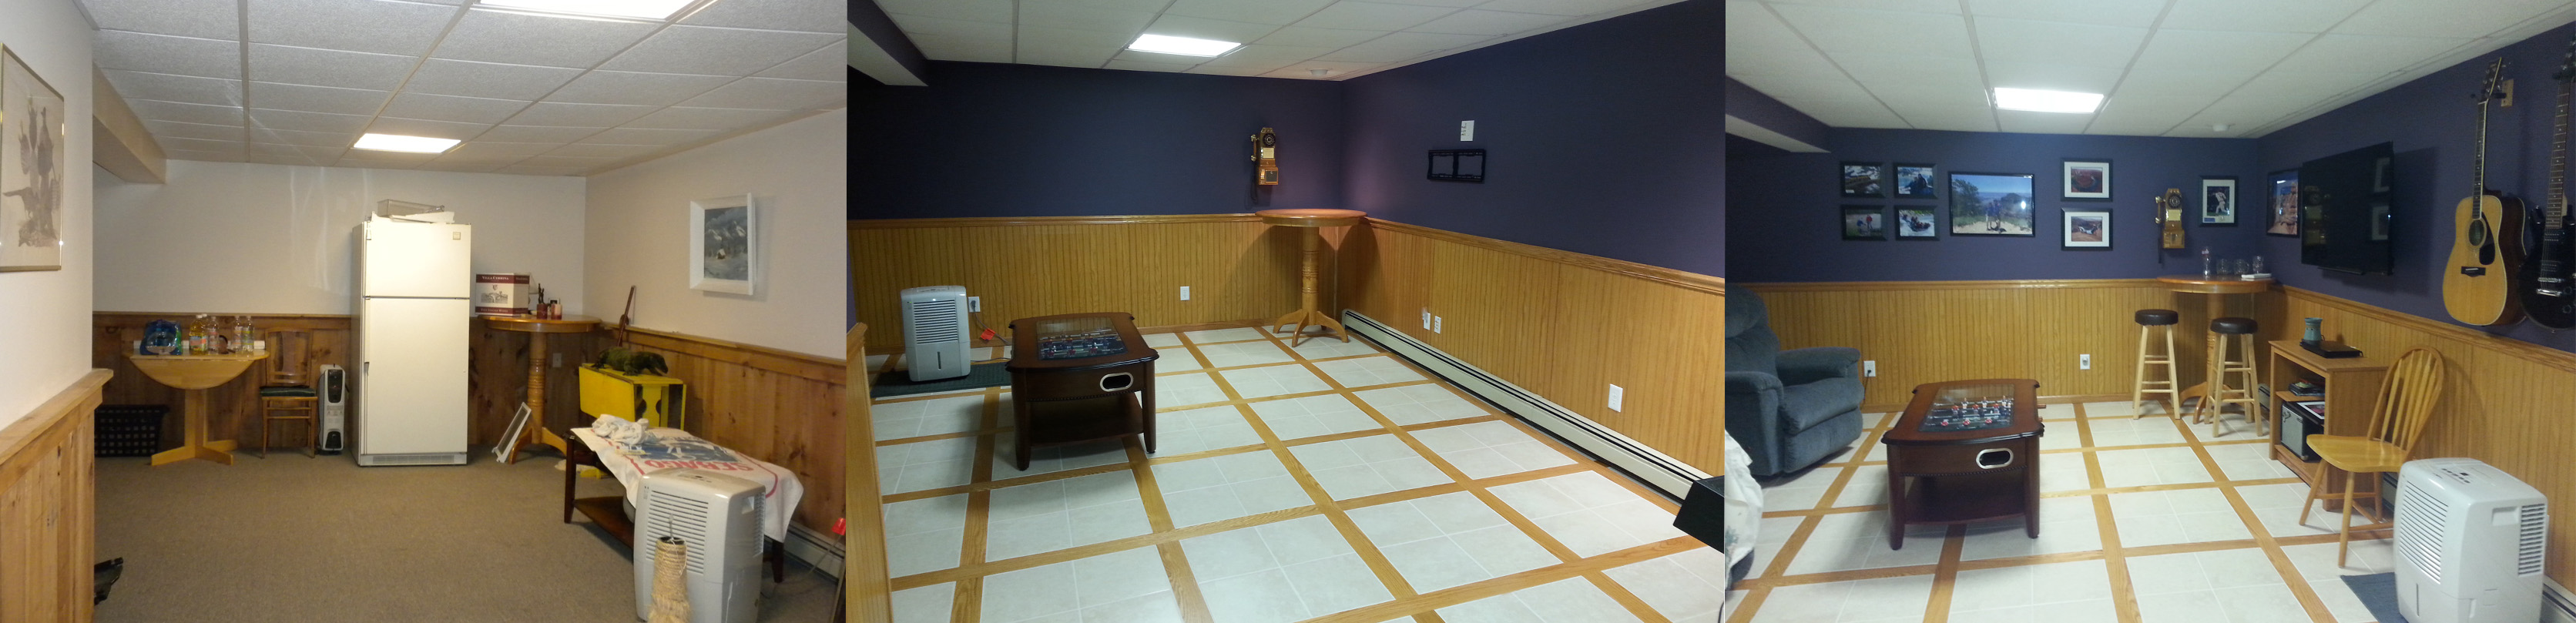 Basement Transformation Using Oak Beadboard Paneling